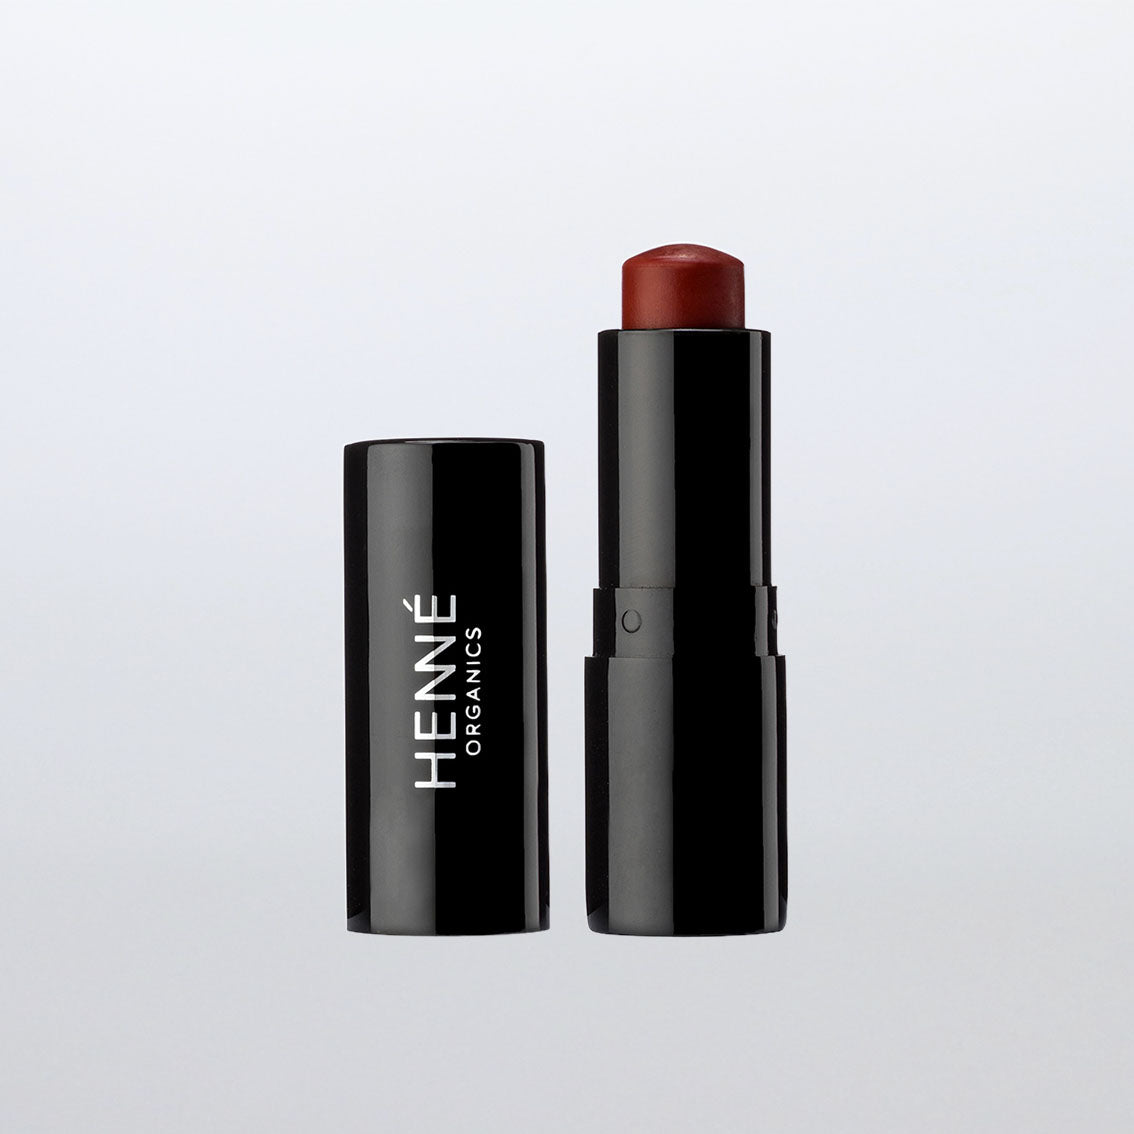 Henné Intrigue Luxury Lip Tint, Lips, Henné Organics - Astrid Wylde